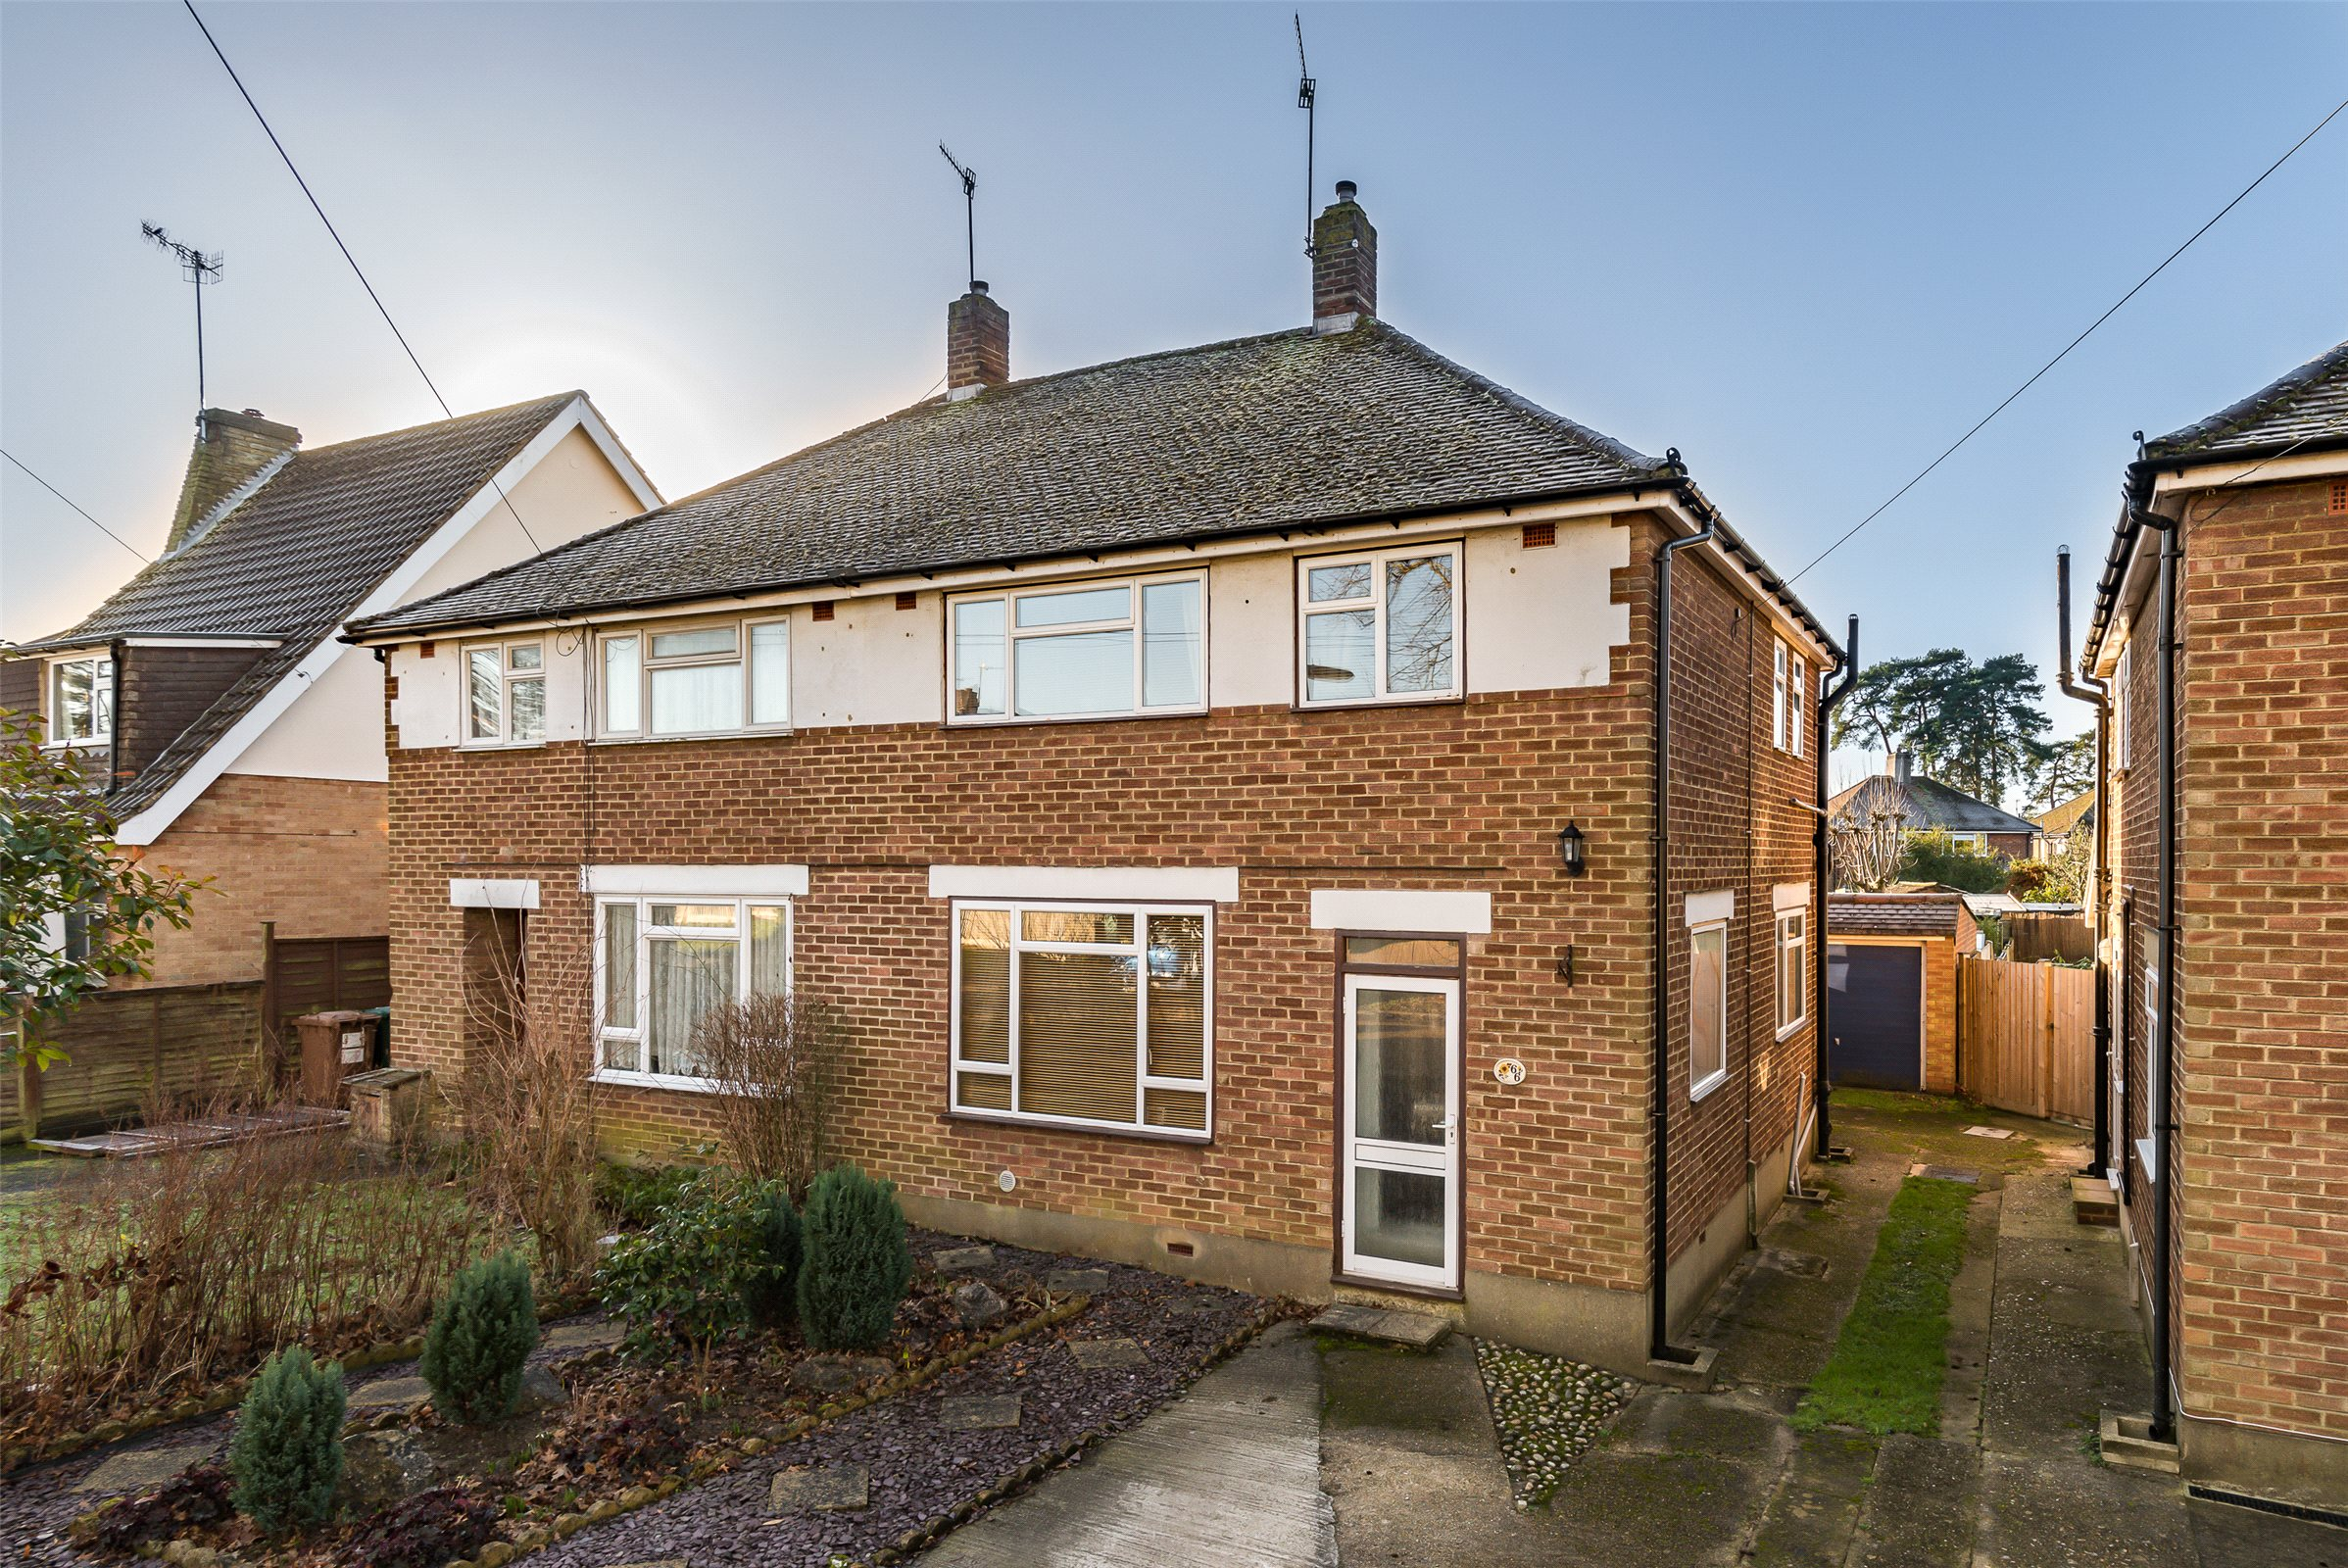 3 Bedrooms Semi Detached House for sale in Kingsley Grove, Reigate, Surrey, RH2